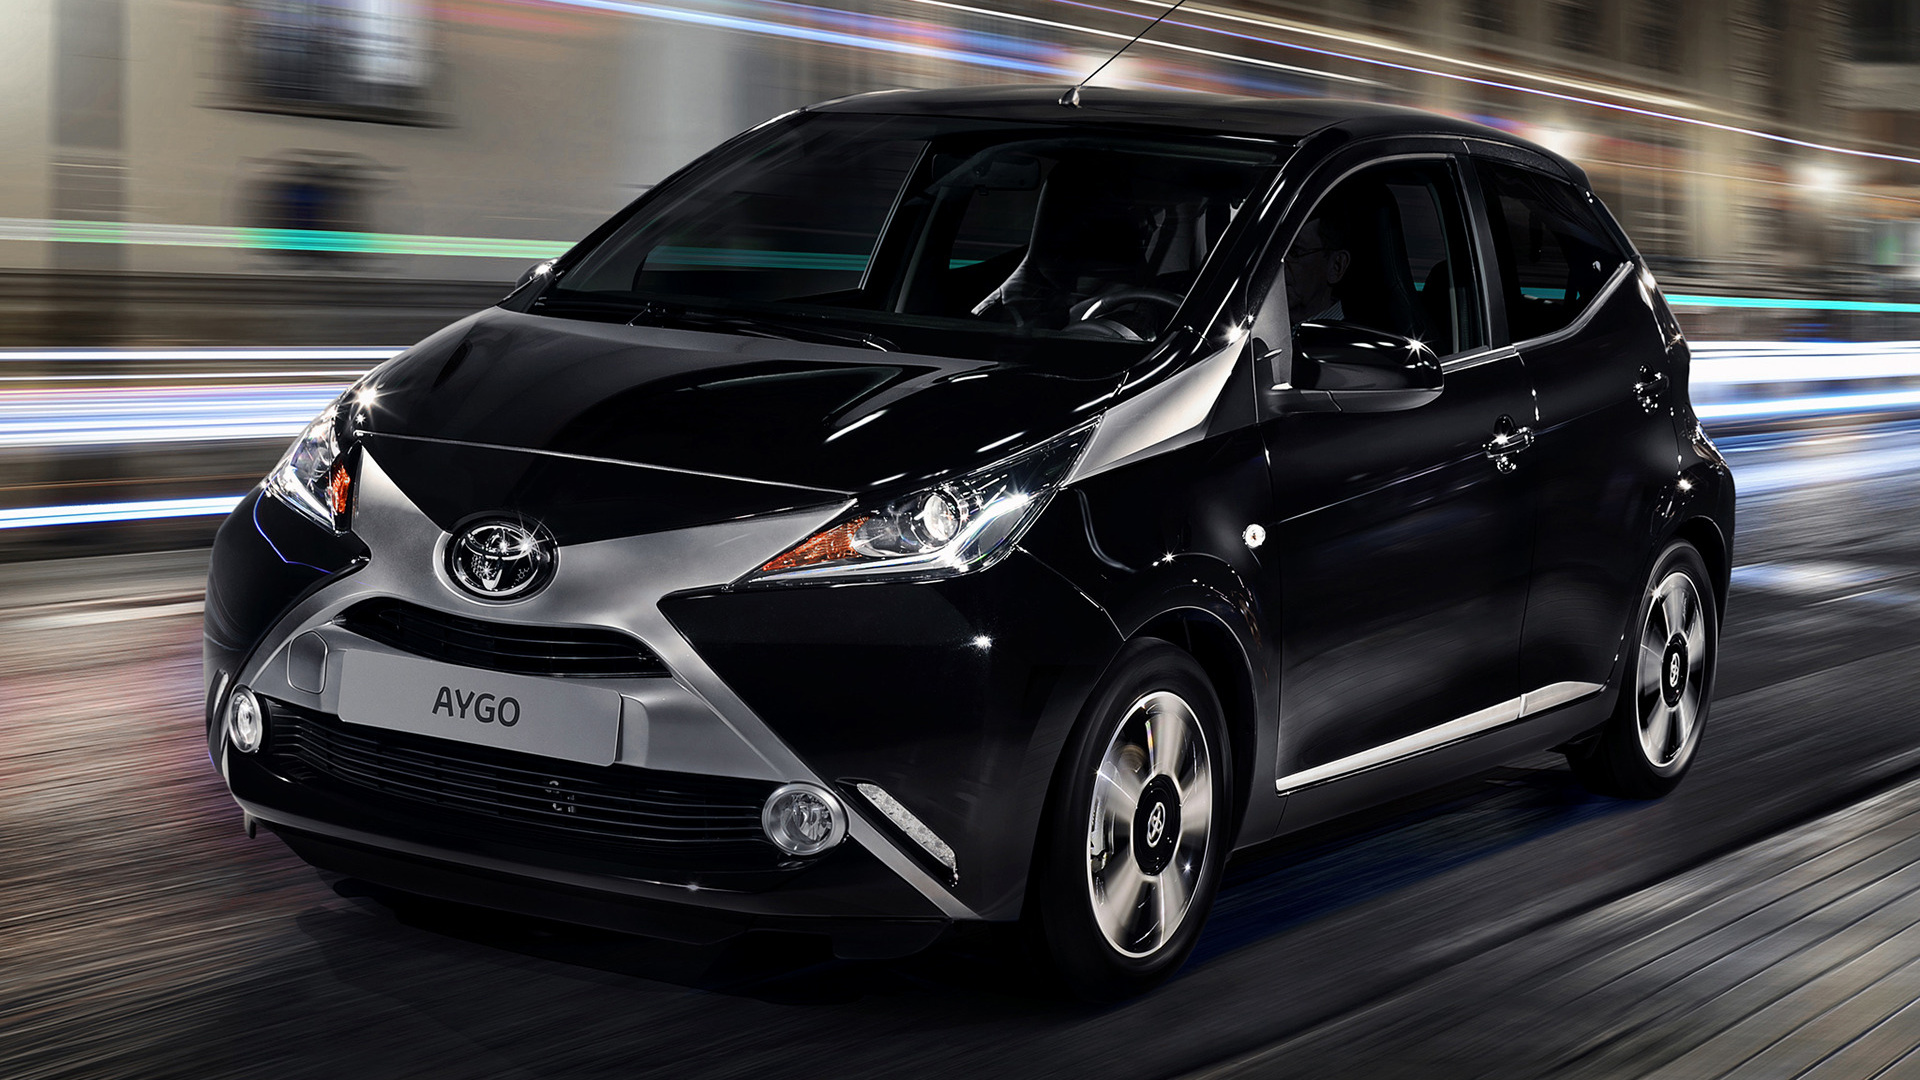 2014 Toyota Aygo x clusiv 5 door   Wallpapers and HD Images Car 1920x1080